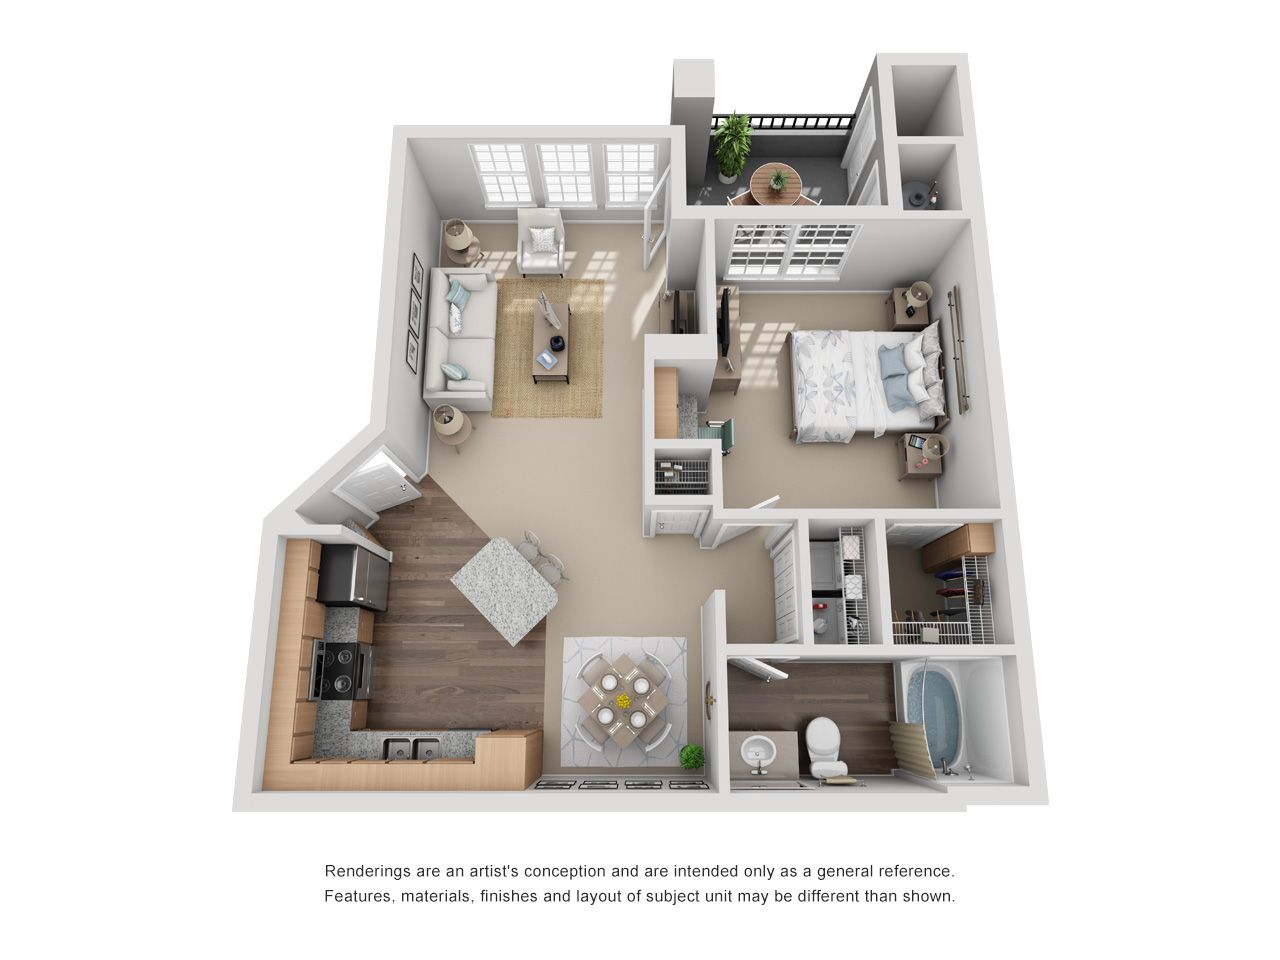 1 2 And 3 Bedroom Apartments In Aurora Co For Rent Aurora Colorado Apartment Steadfast Apartment Floor Plans Apartment Layout Renting A House